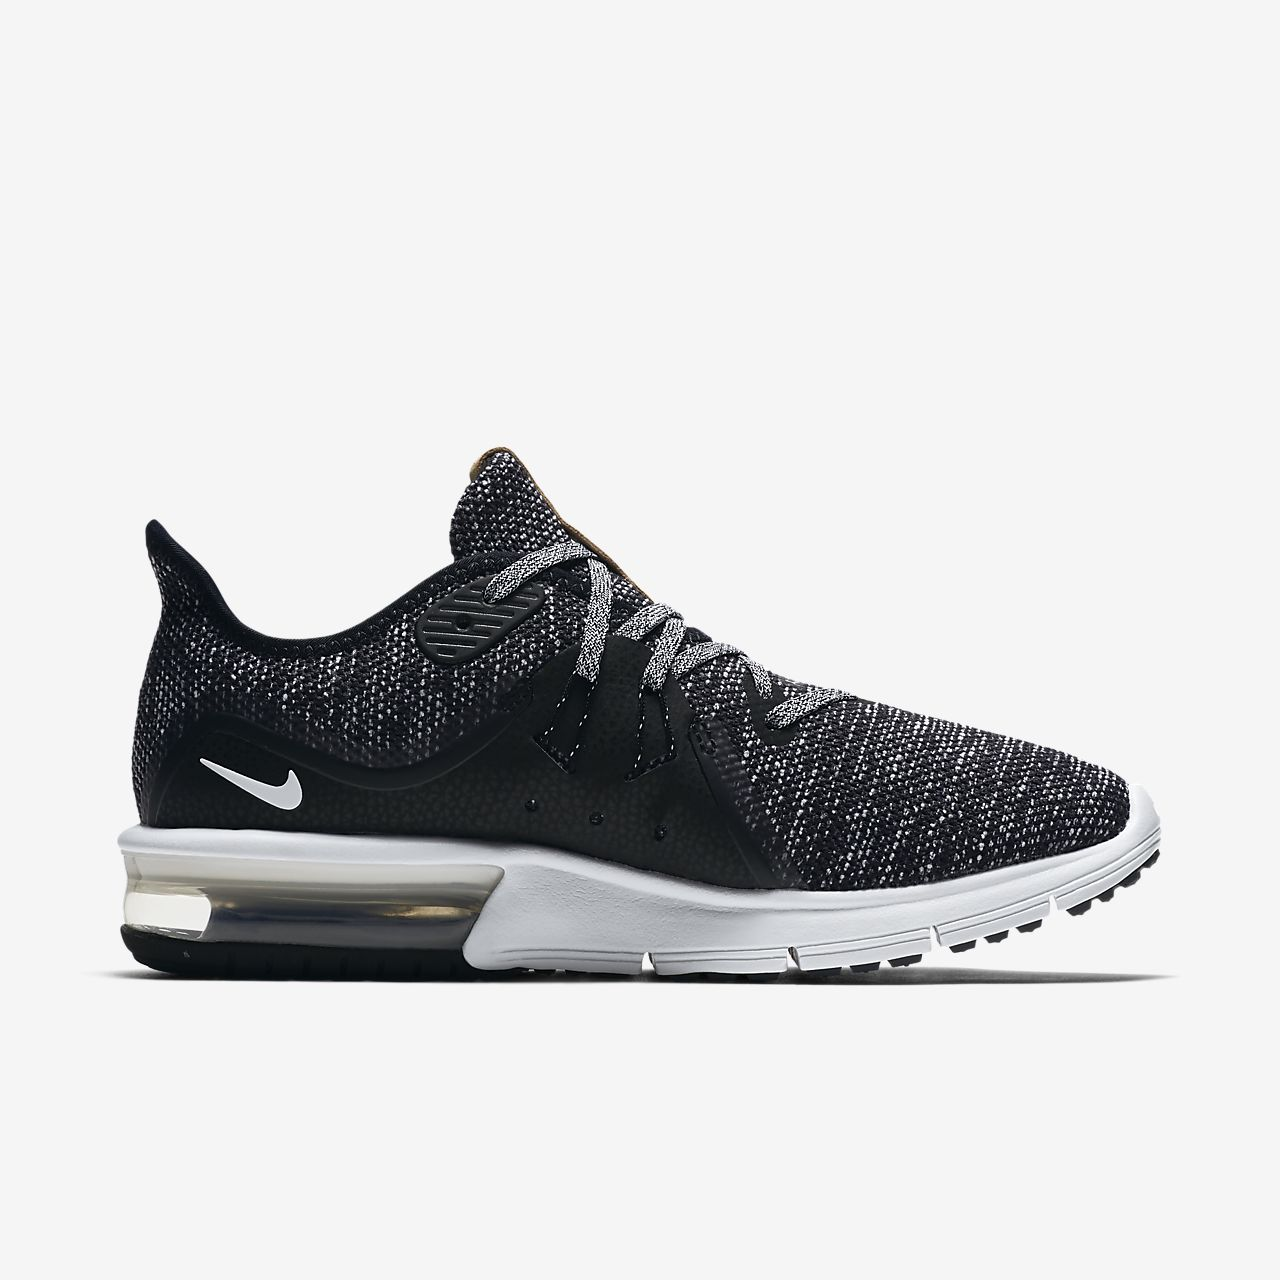 nike air max sequent 3 women 39 s running shoe. Black Bedroom Furniture Sets. Home Design Ideas